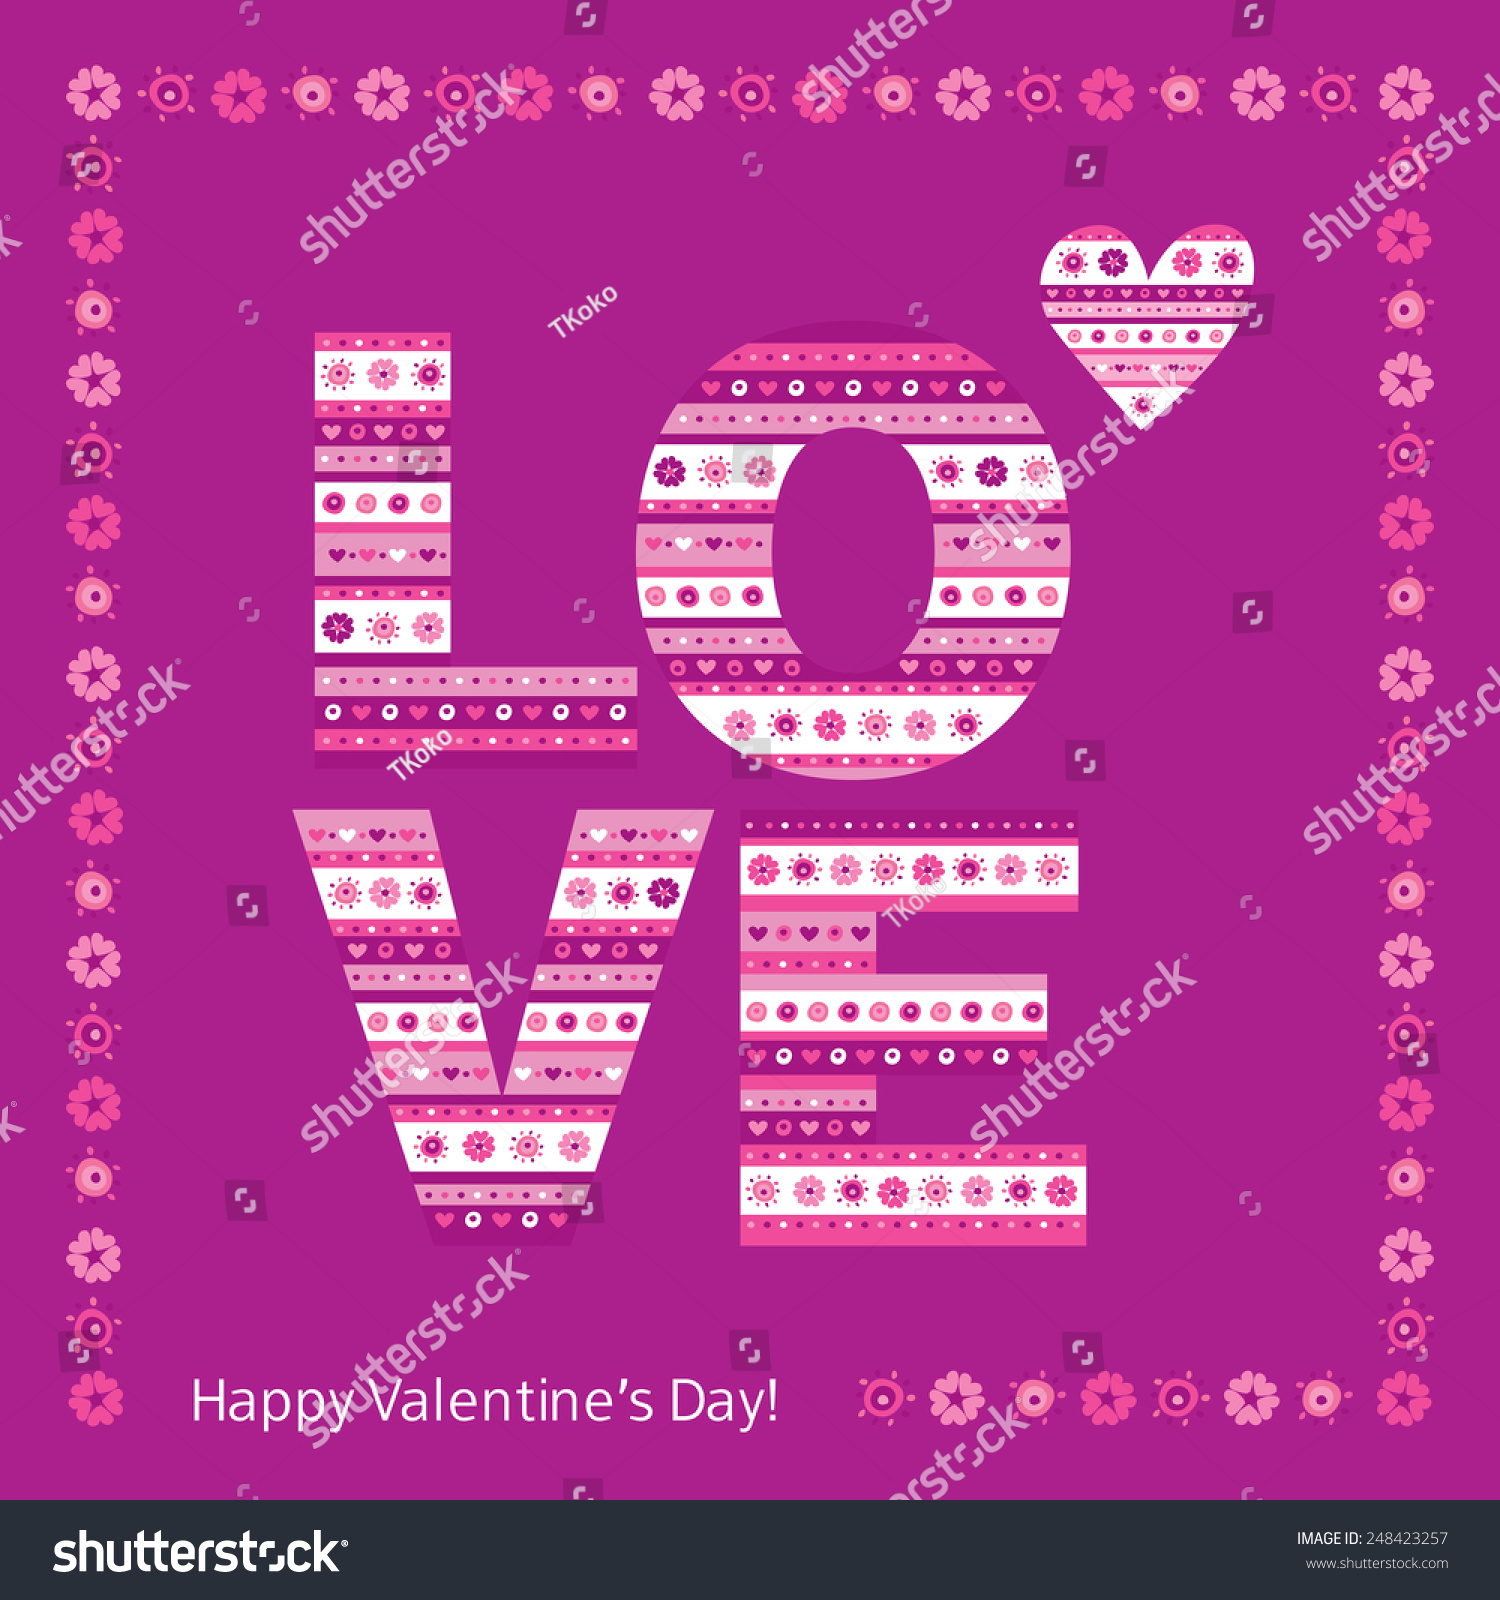 Greeting card happy valentines day love stock vector 248423257 greeting card with happy valentines day love the word love of flowers and hearts kristyandbryce Images